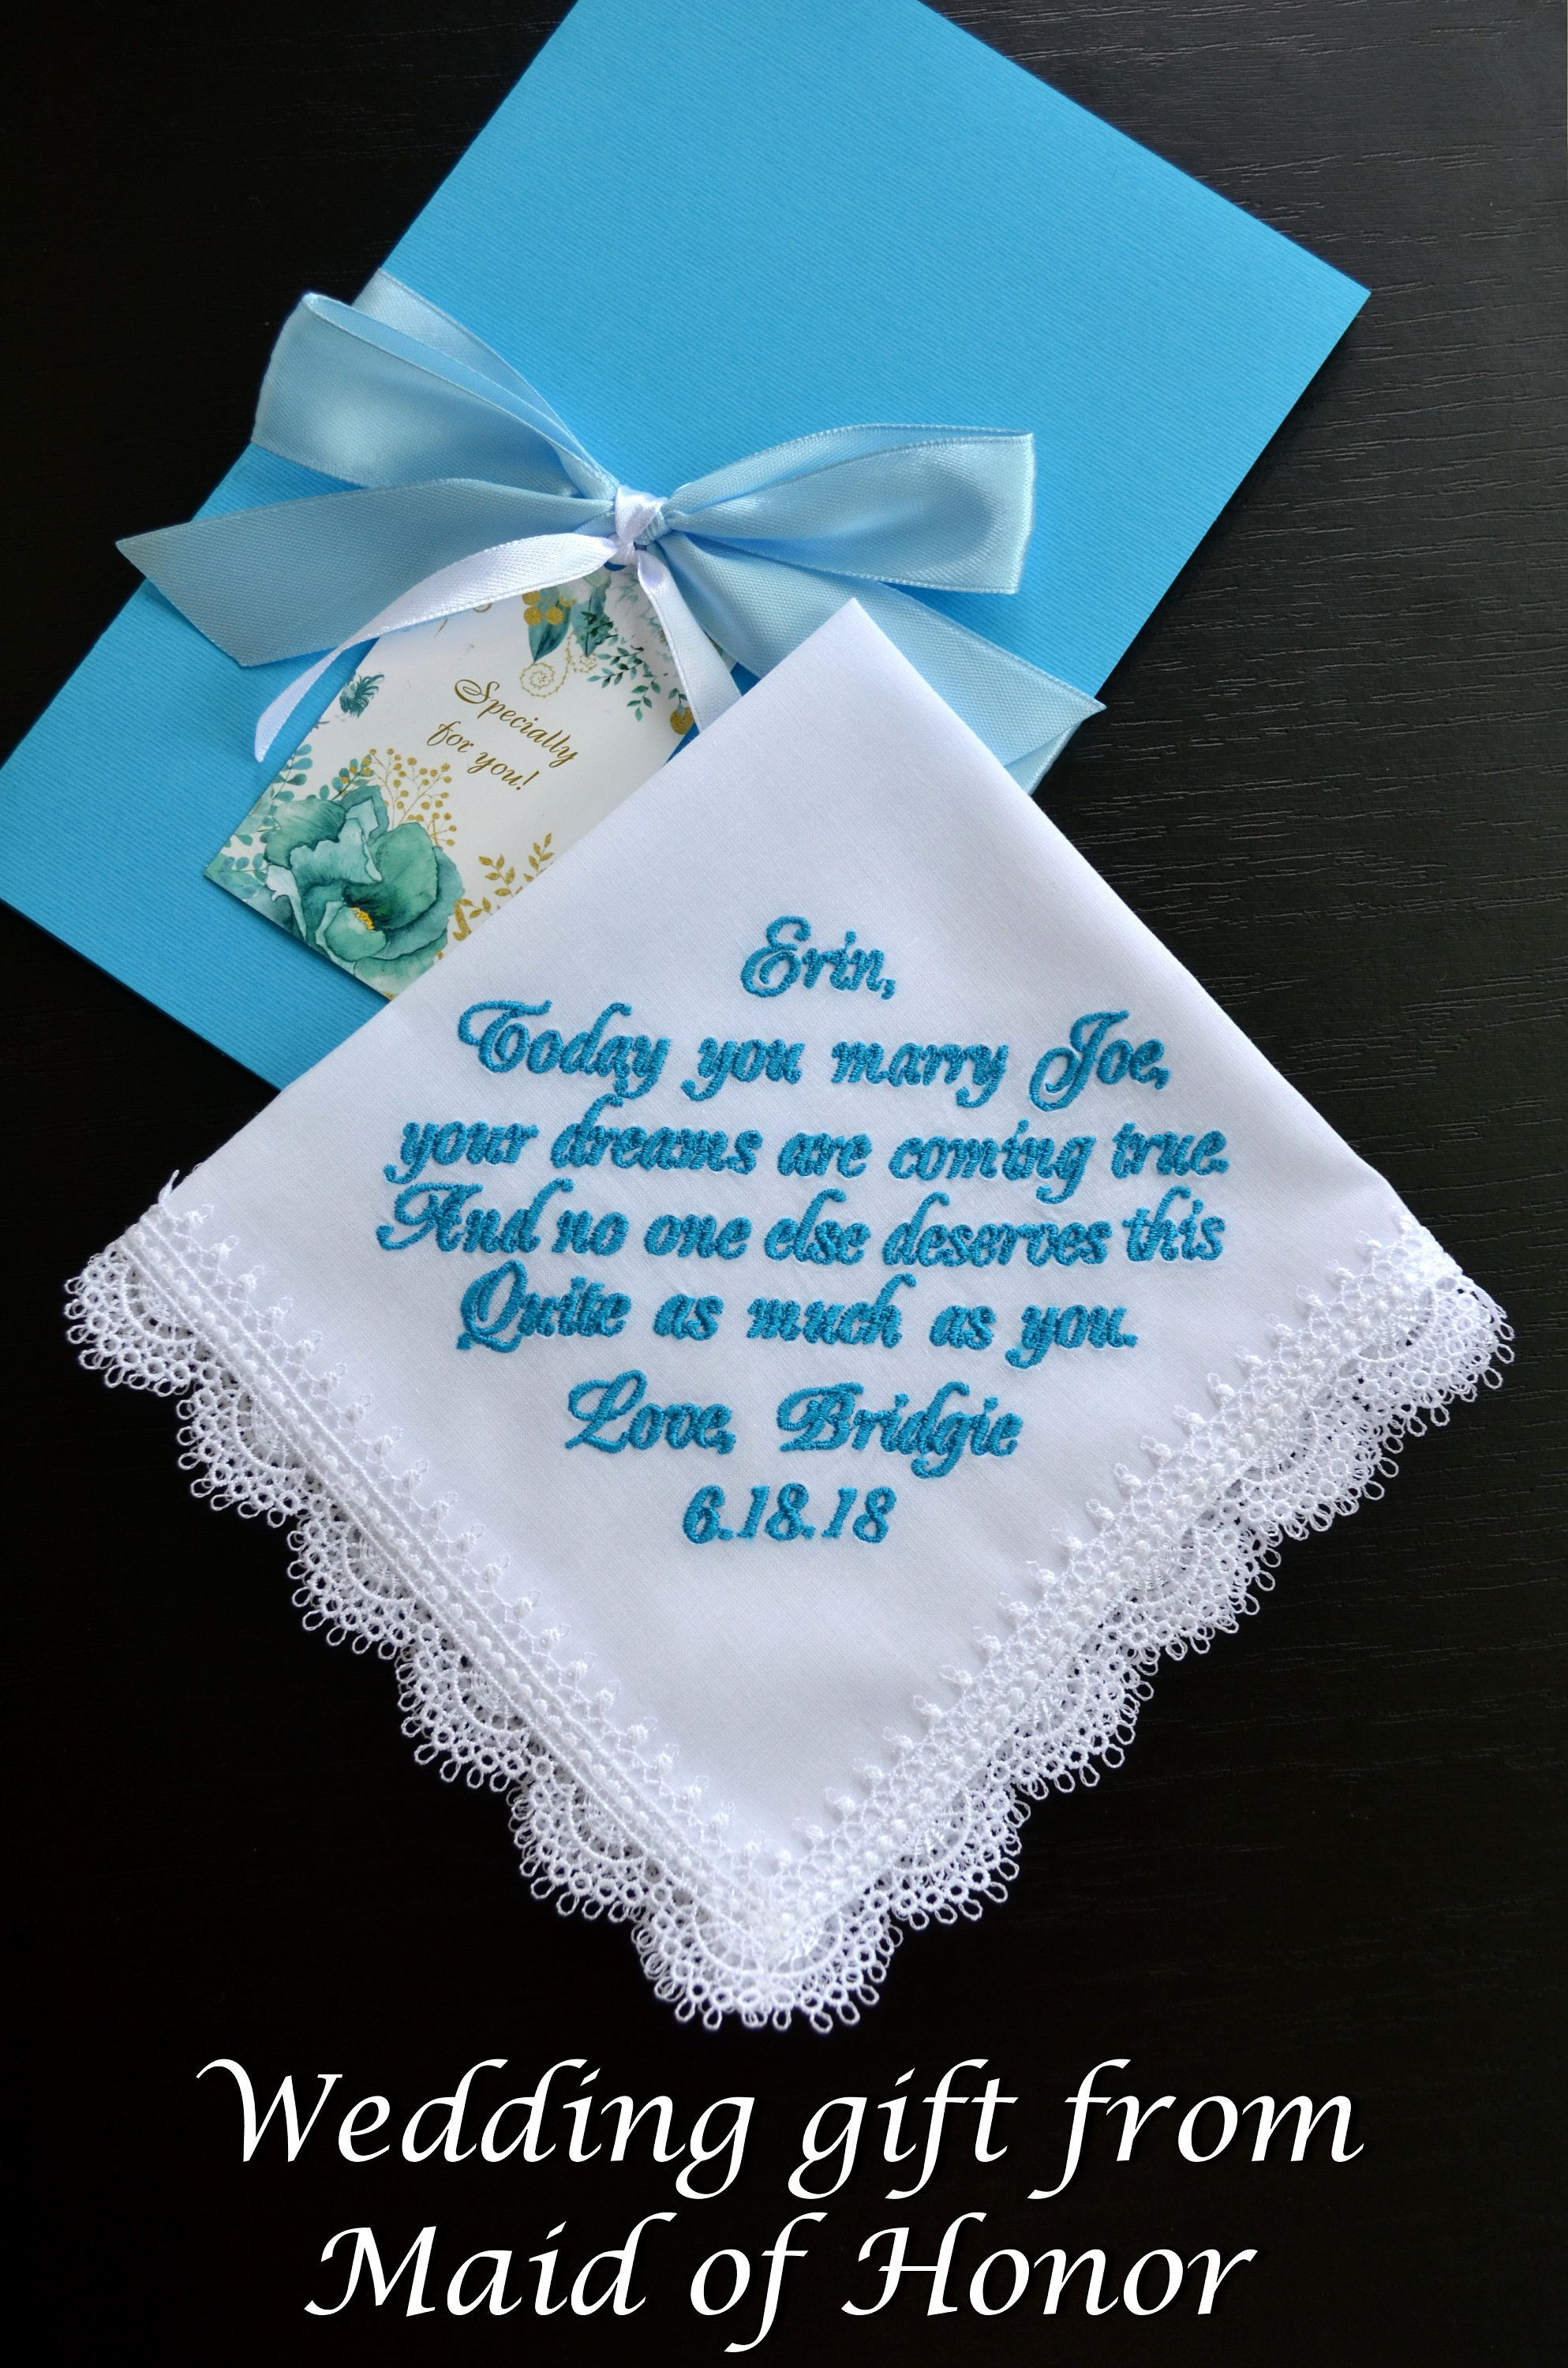 Embroidered wedding handkerchief for Bride from Maid of Honor Sister hanky Bridesmaid gift hankerchief Personalized Custom & Gift for bride from maid of honor Bride gift from bridesmaid ...